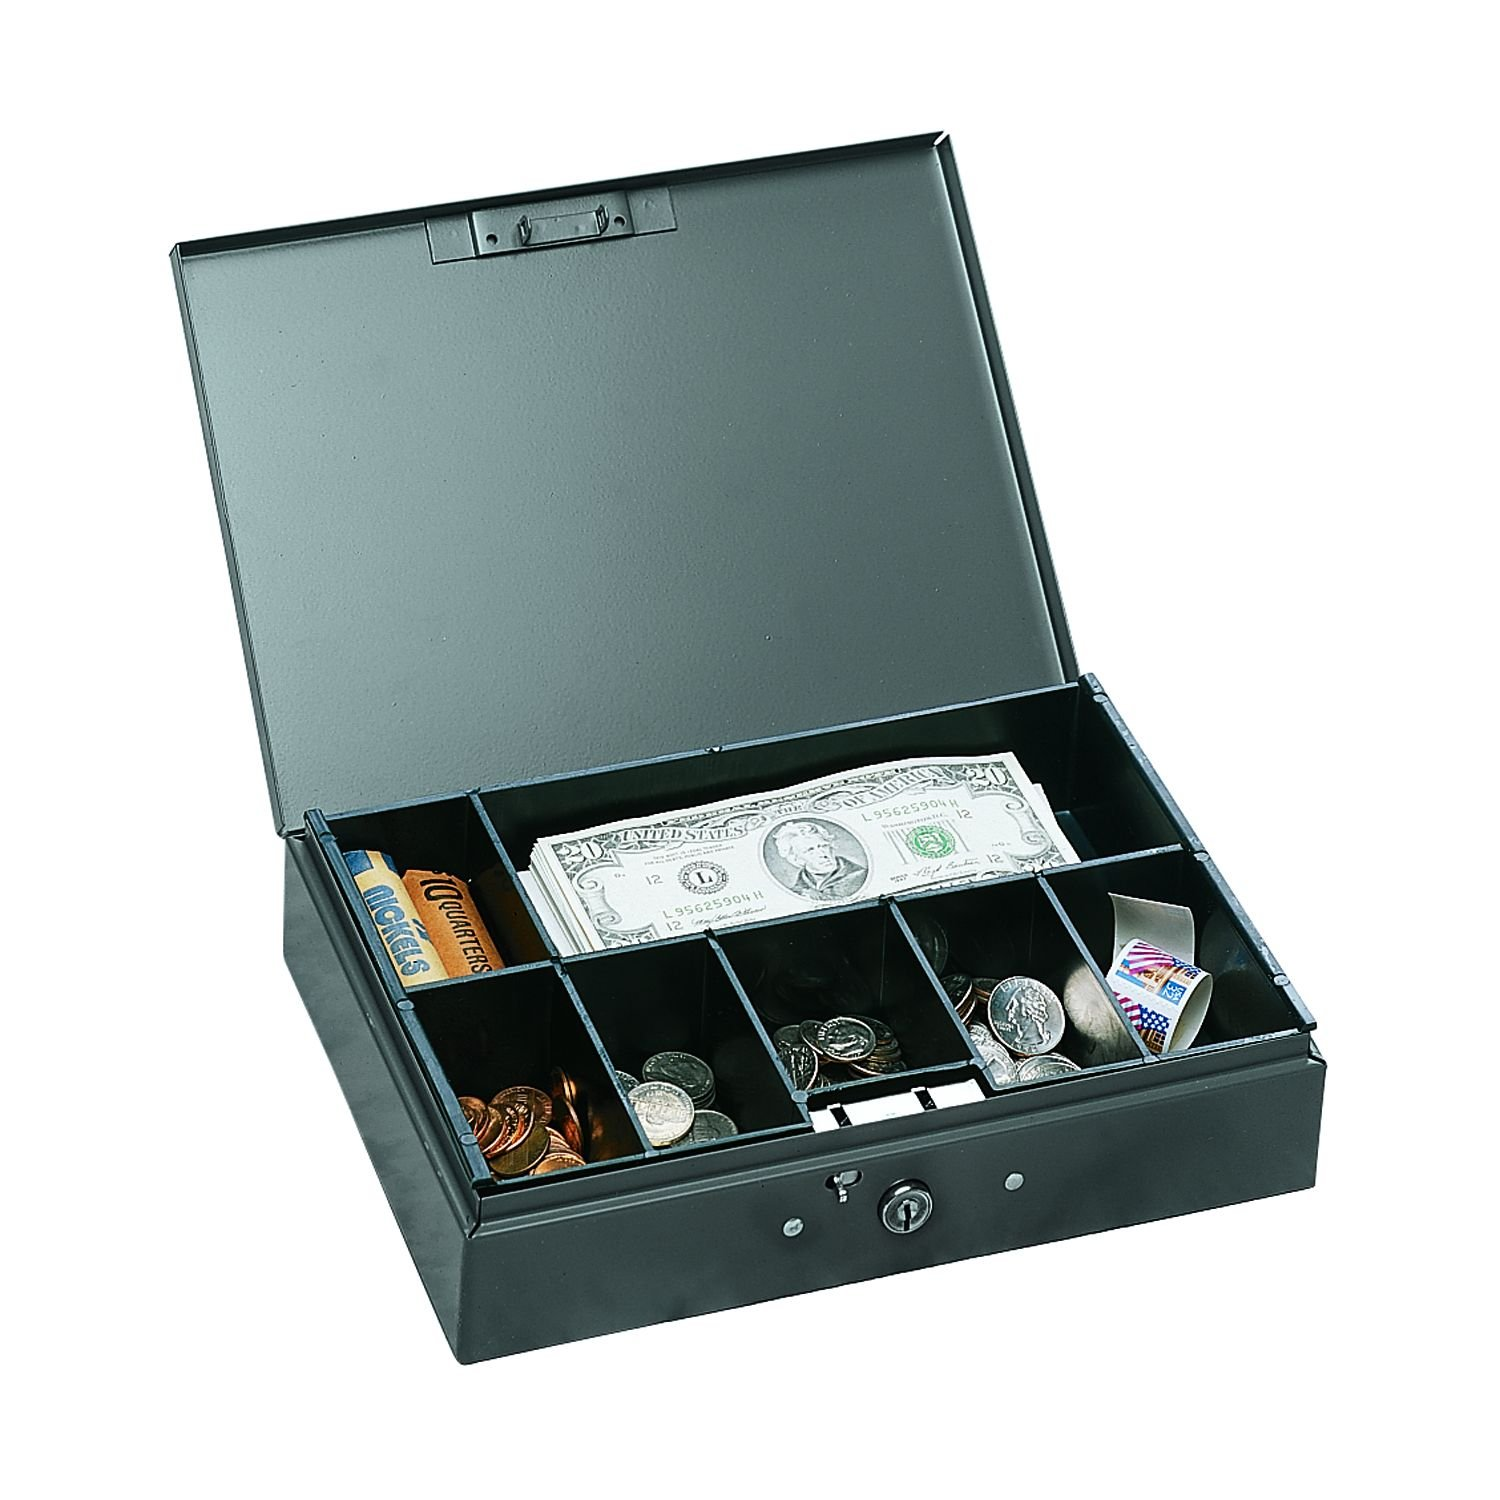 STEELMASTER Extra Large Cash Box with Handles, Gray (221F15TGRA) Gray (221F15TGRA) MMF Industries